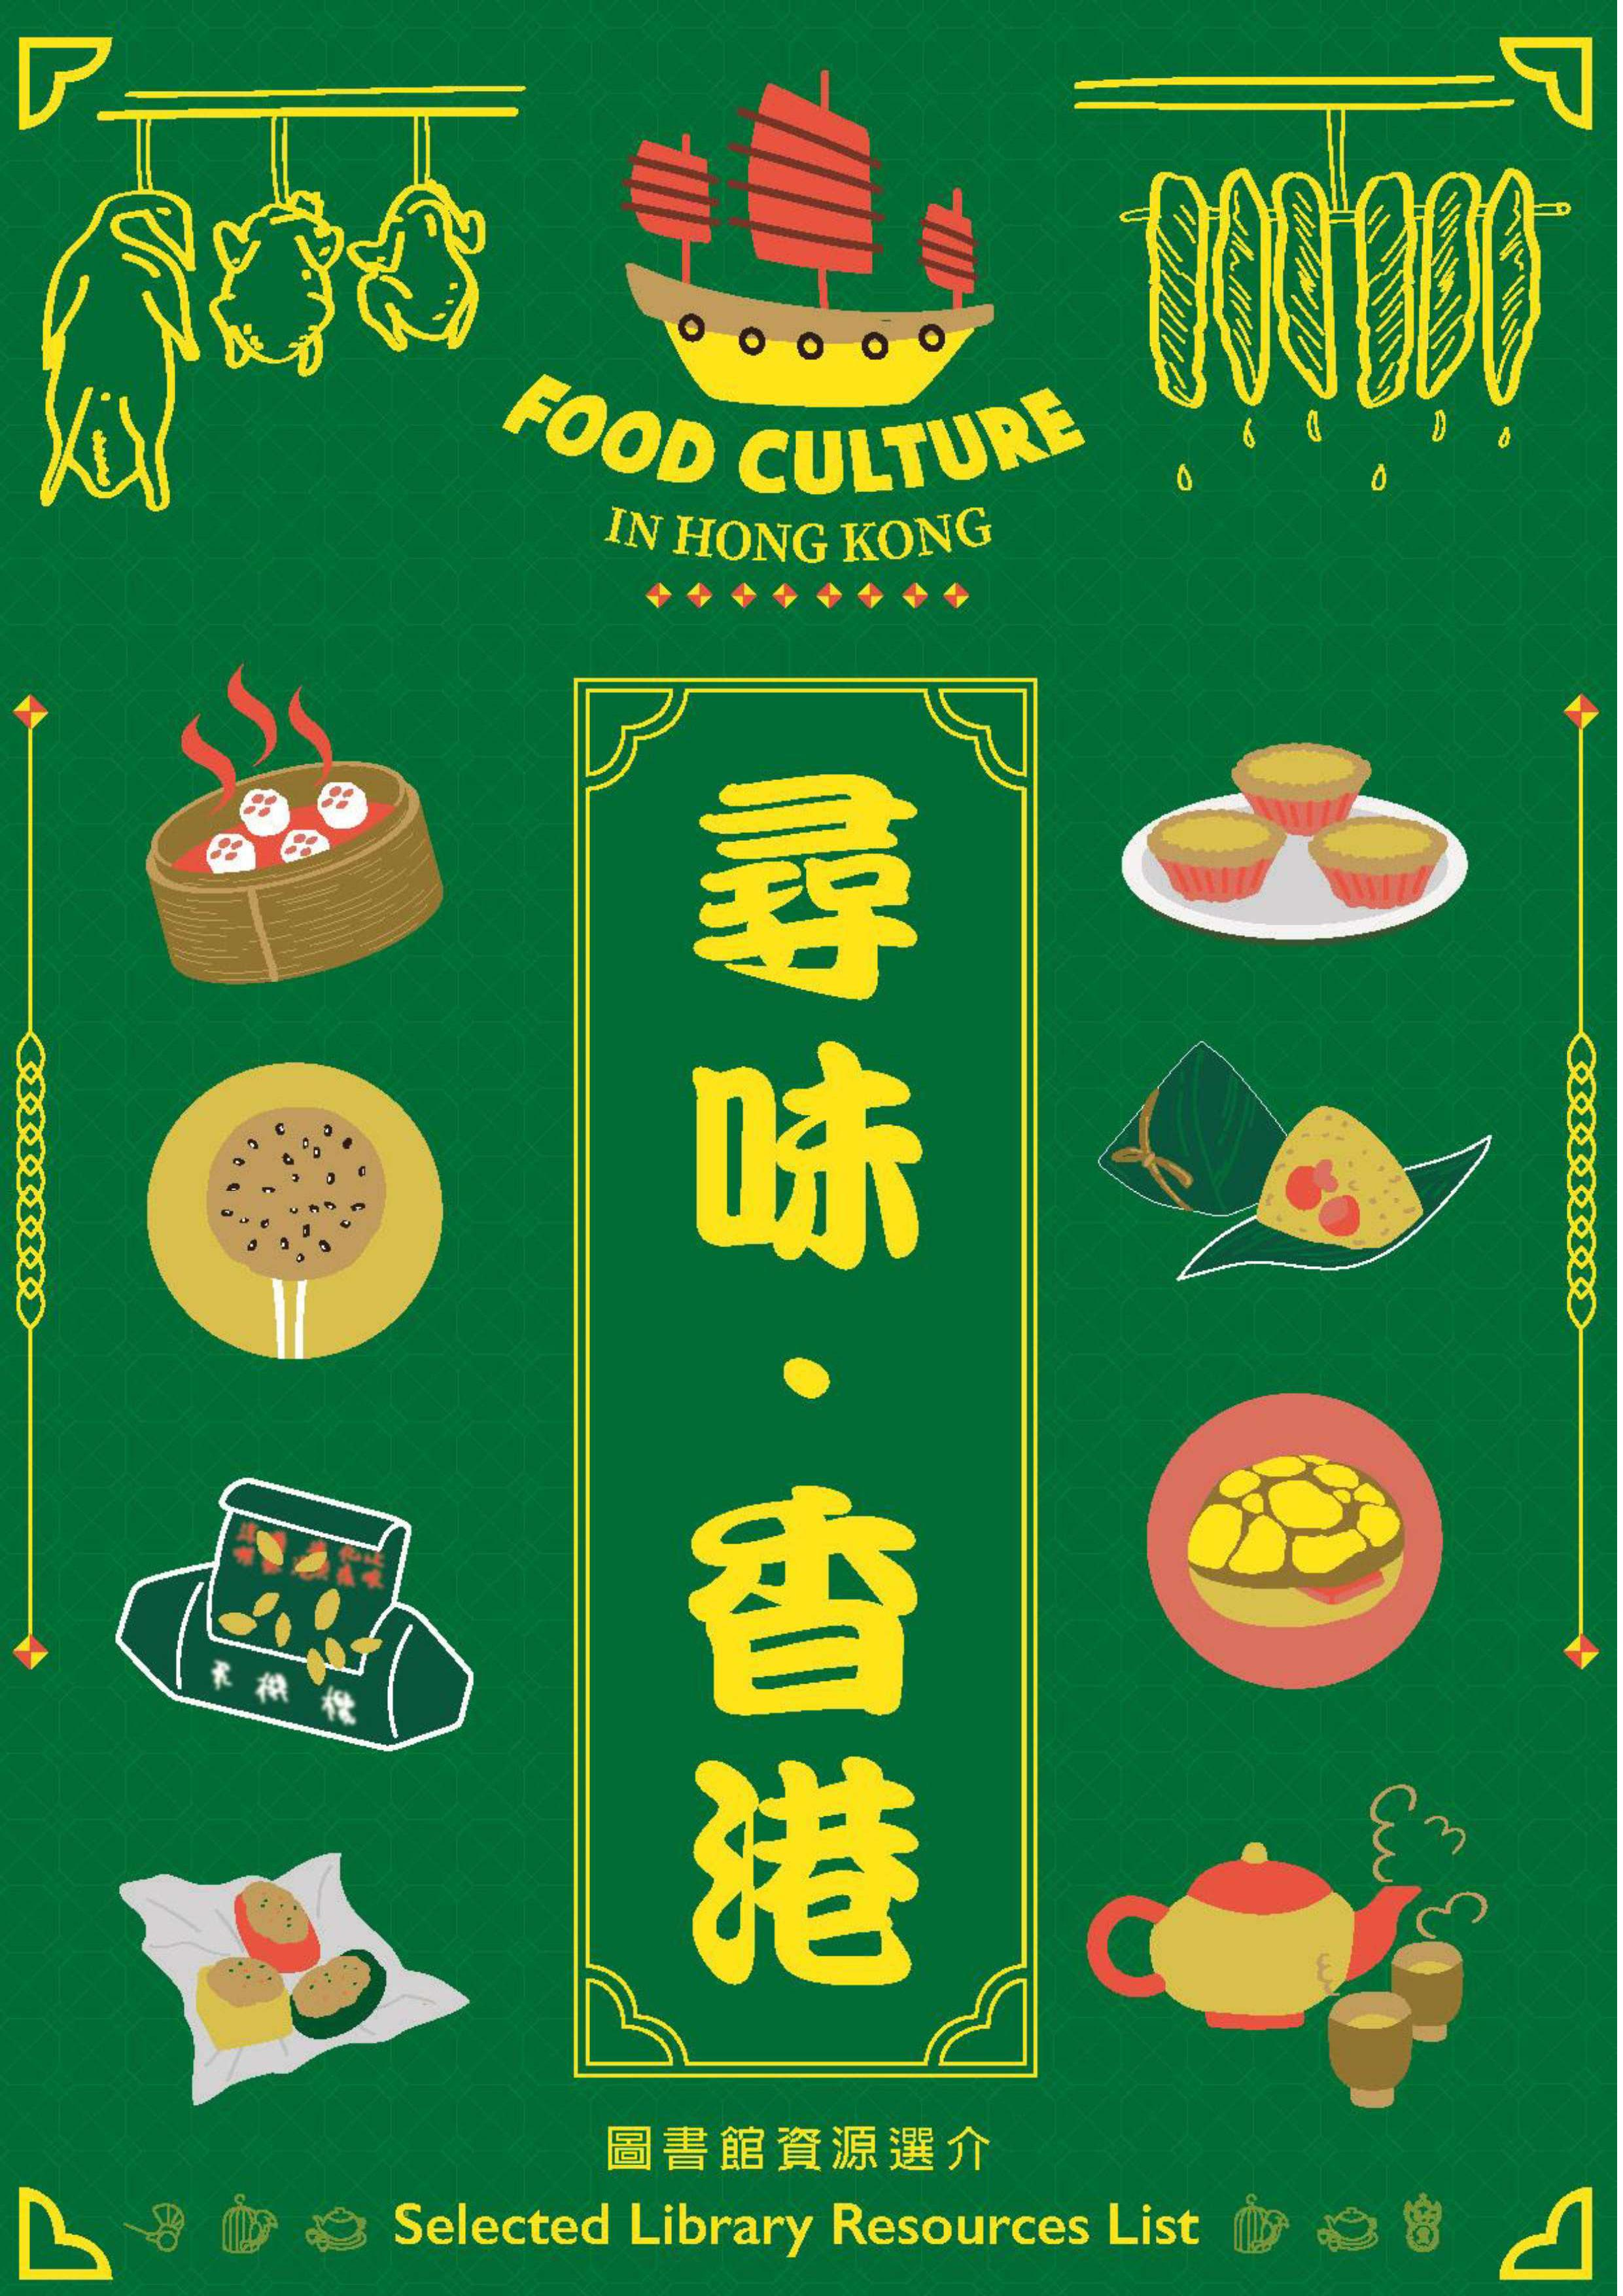 Food Culture in Hong Kong